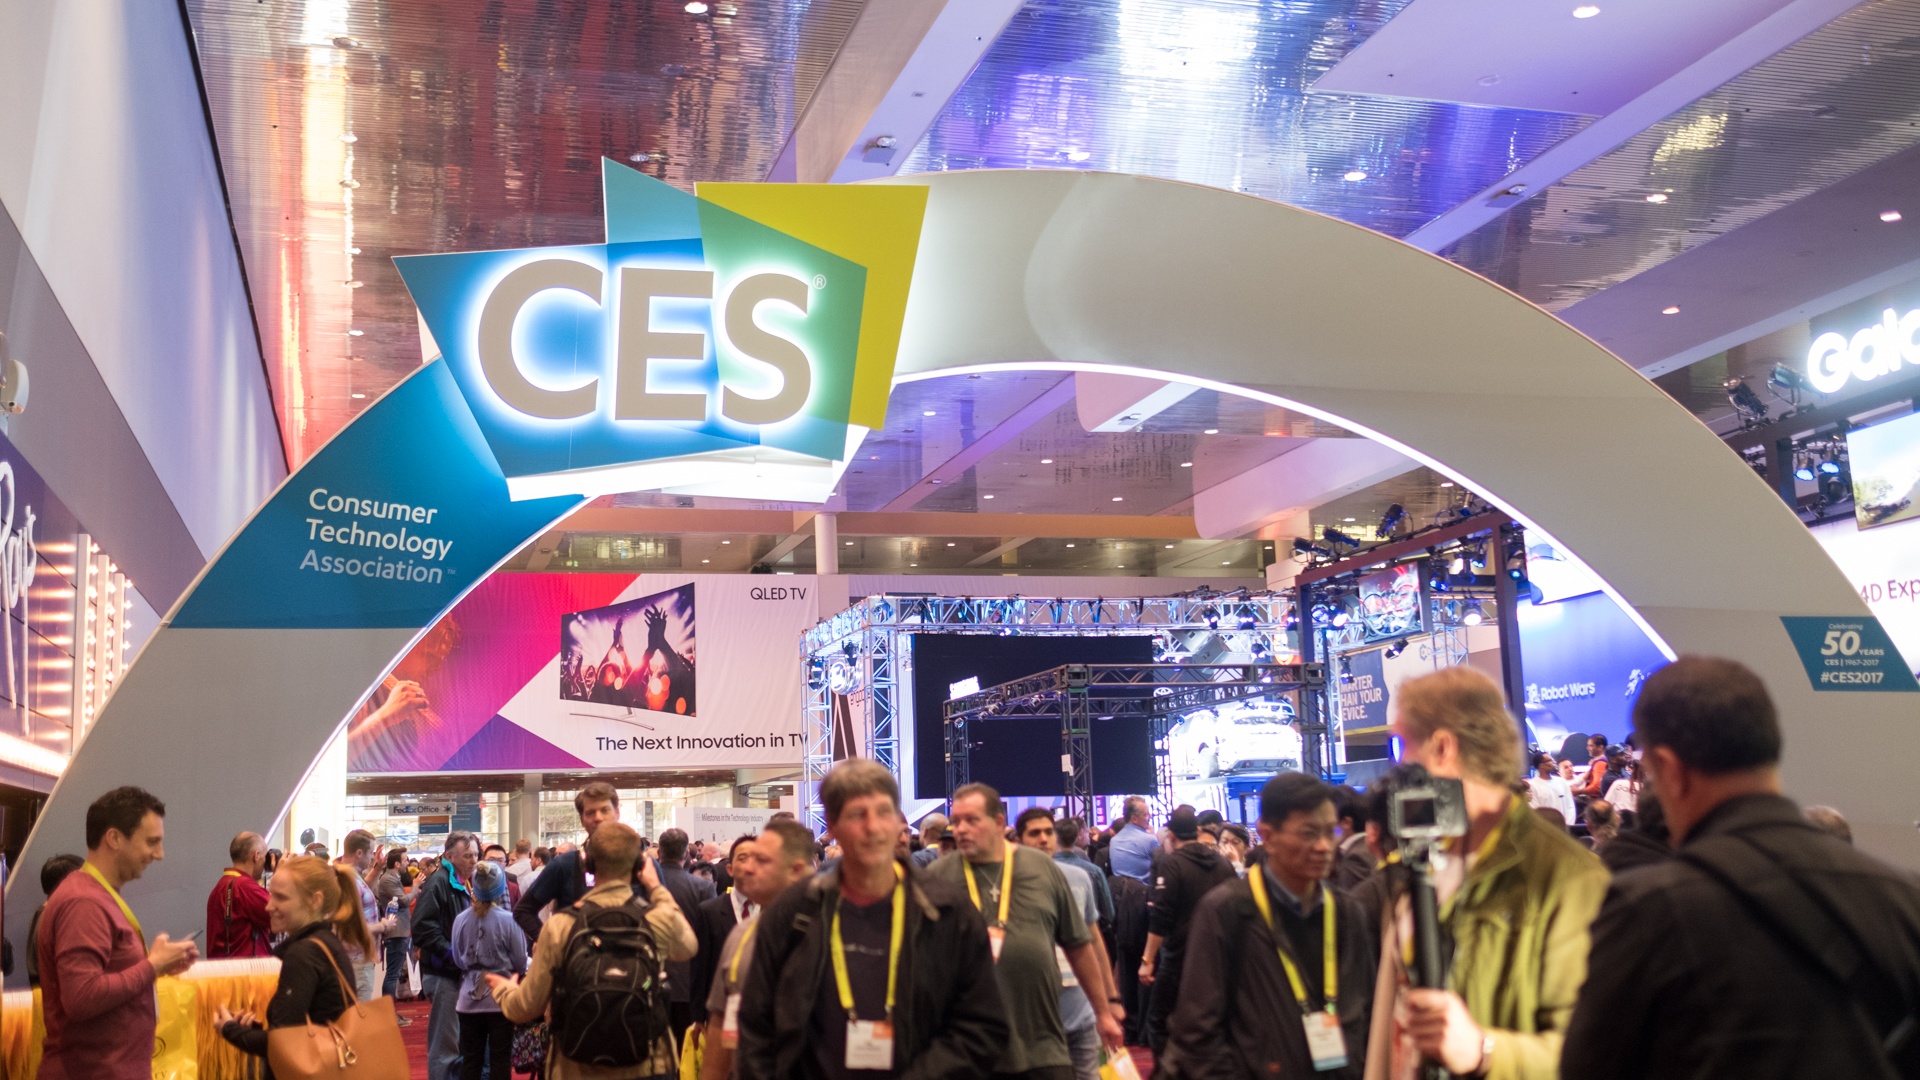 Final CES Thoughts News from the 2018 Consumer Electronics Show – Part 3